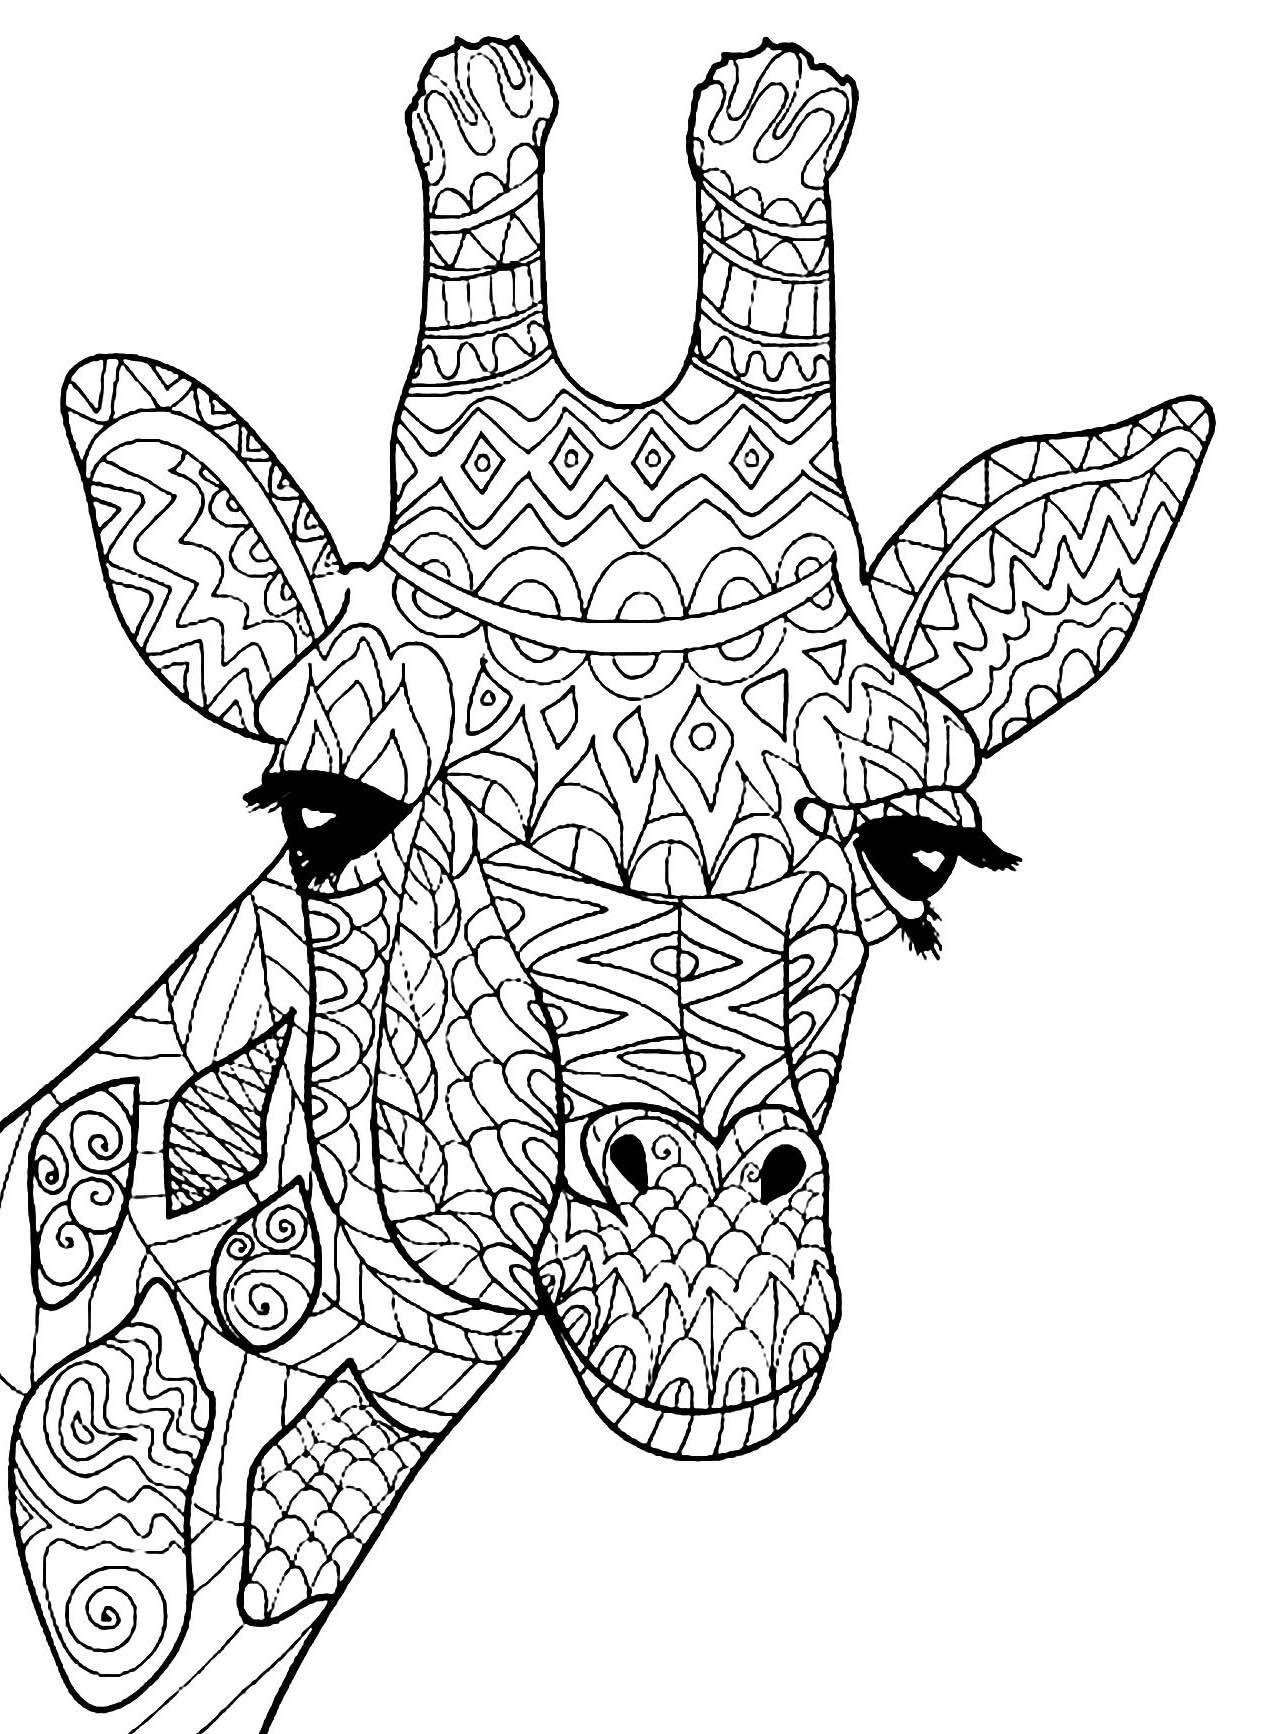 Giraffe Coloring Page Animal Coloring Page Adult Coloring Page